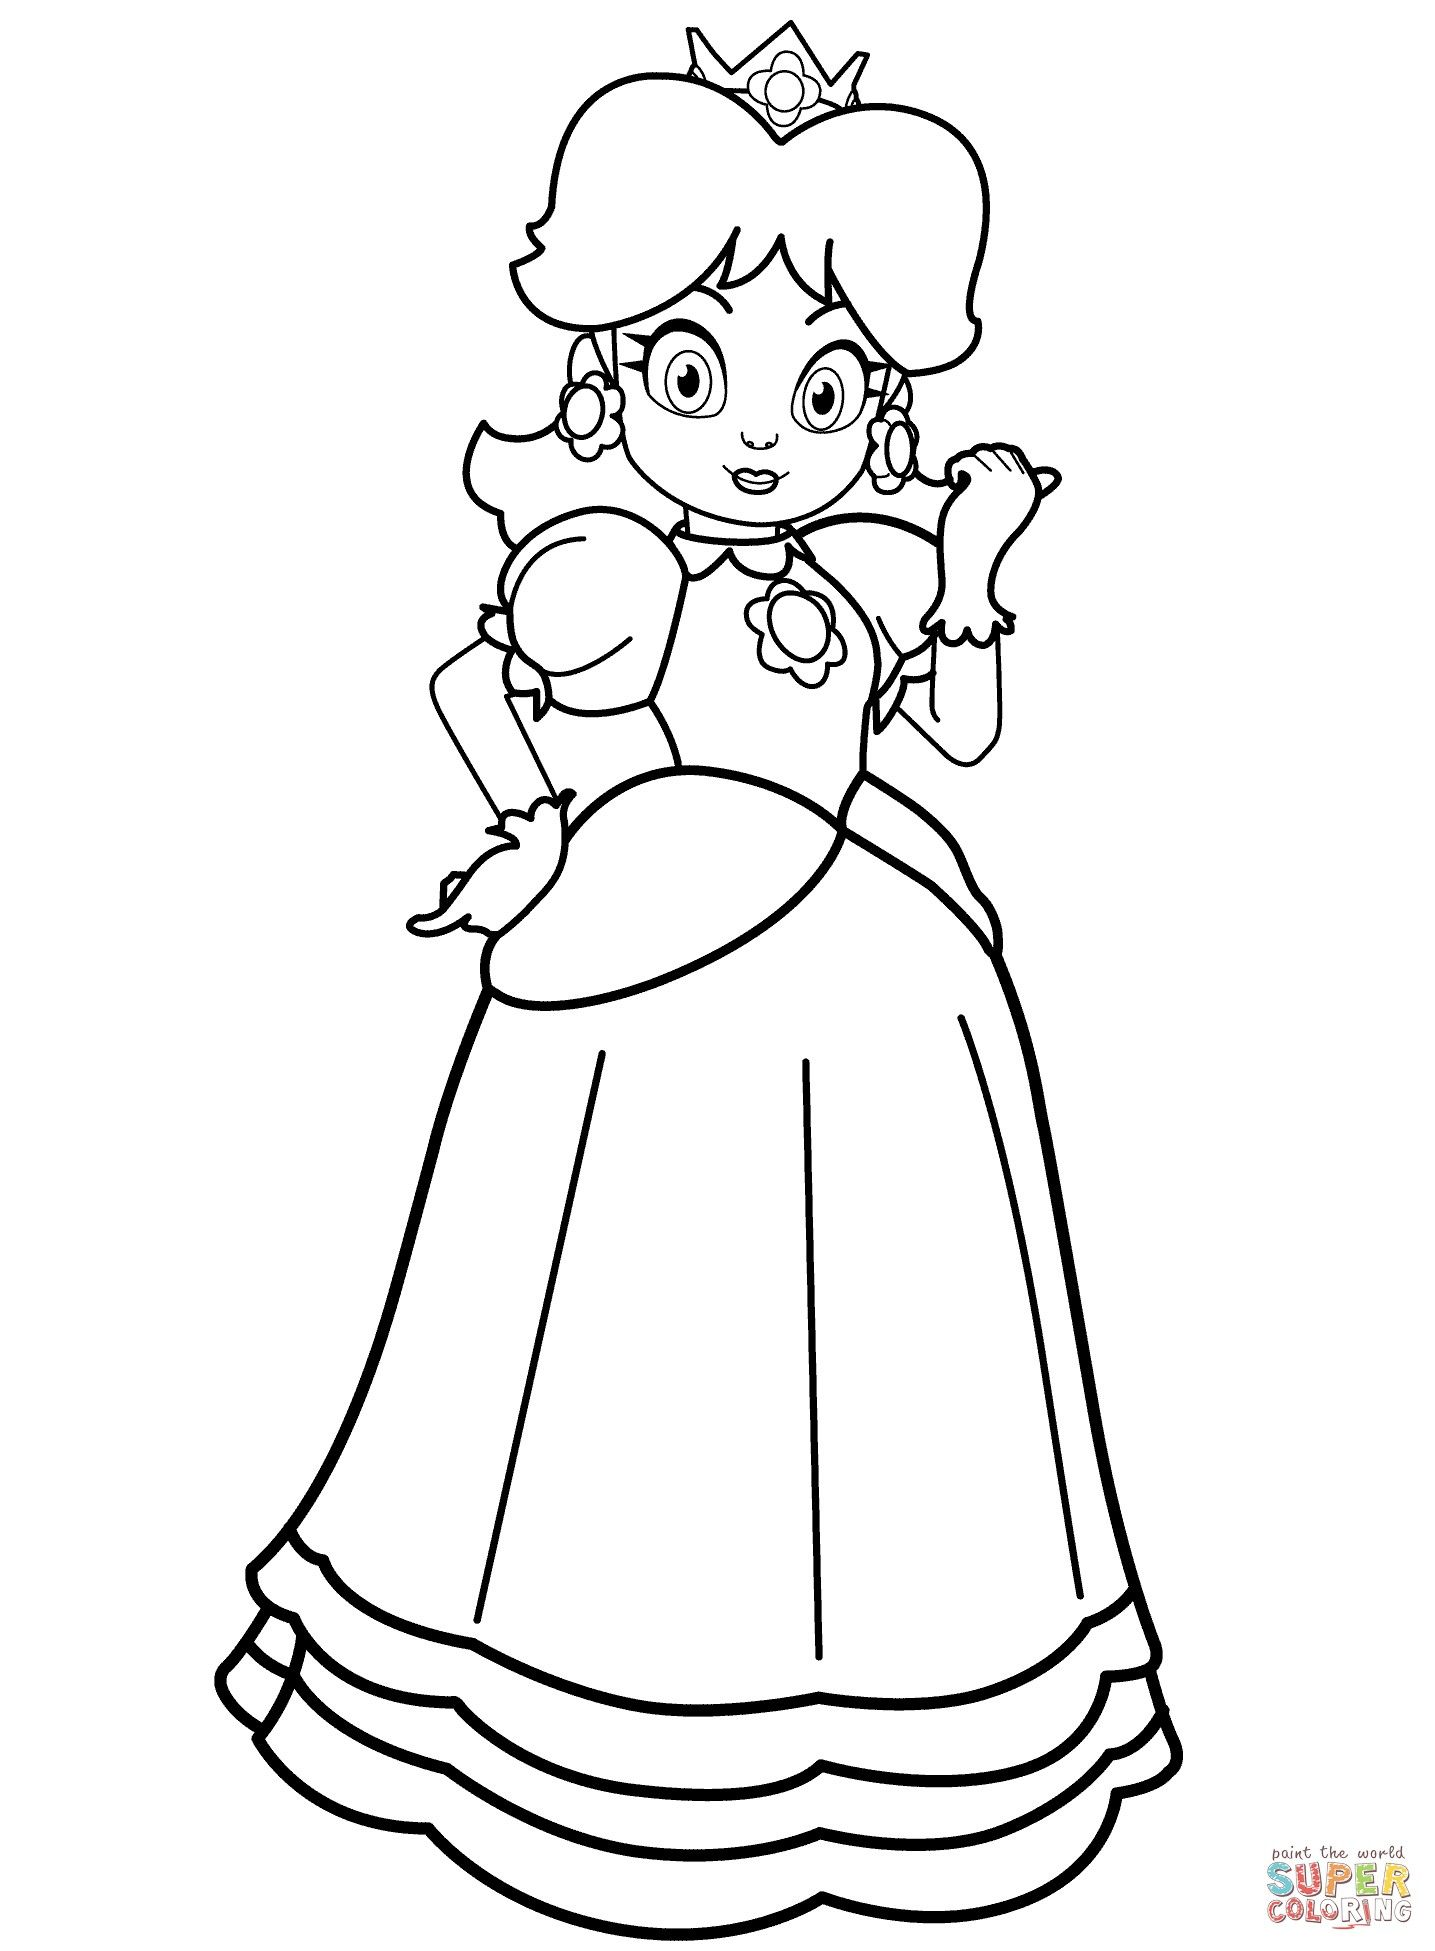 Princess Daisy Coloring Page From The Thousands Of Photos On The Net Regarding Princess Daisy Princess Coloring Pages Mario Coloring Pages Princess Coloring